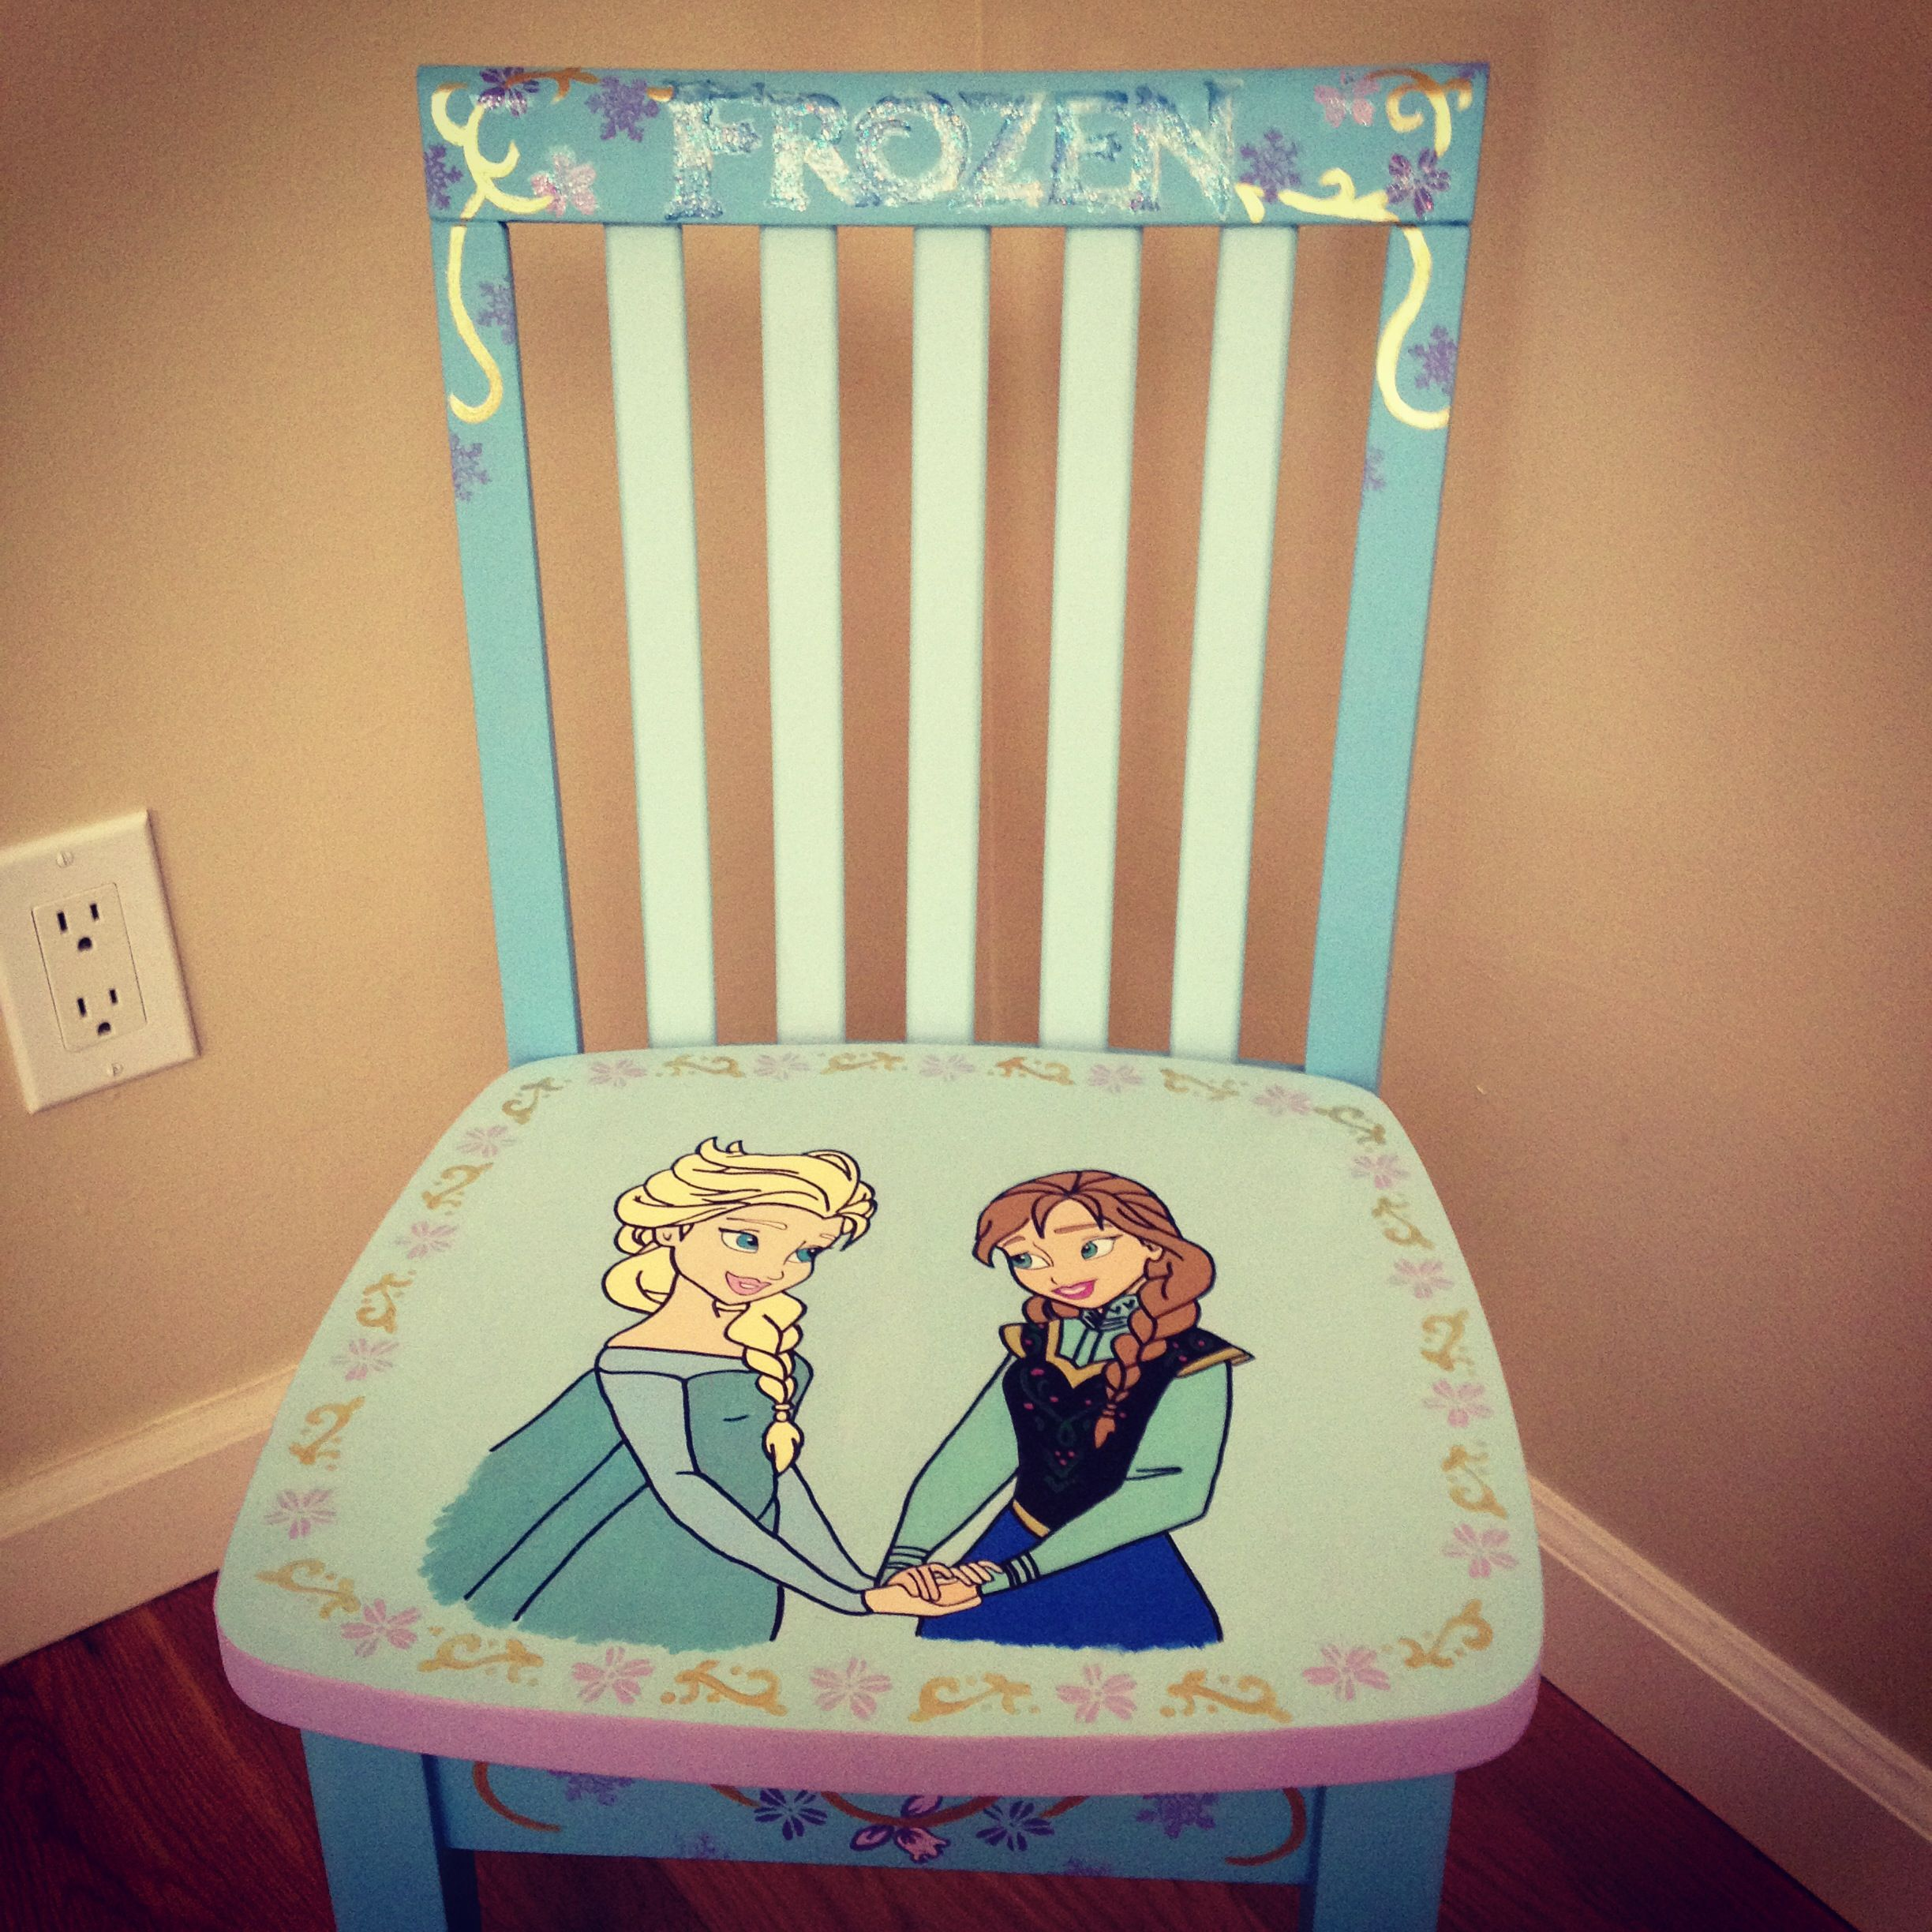 Frozen themed kids chair Elsa and Anna painted on seat Glitter